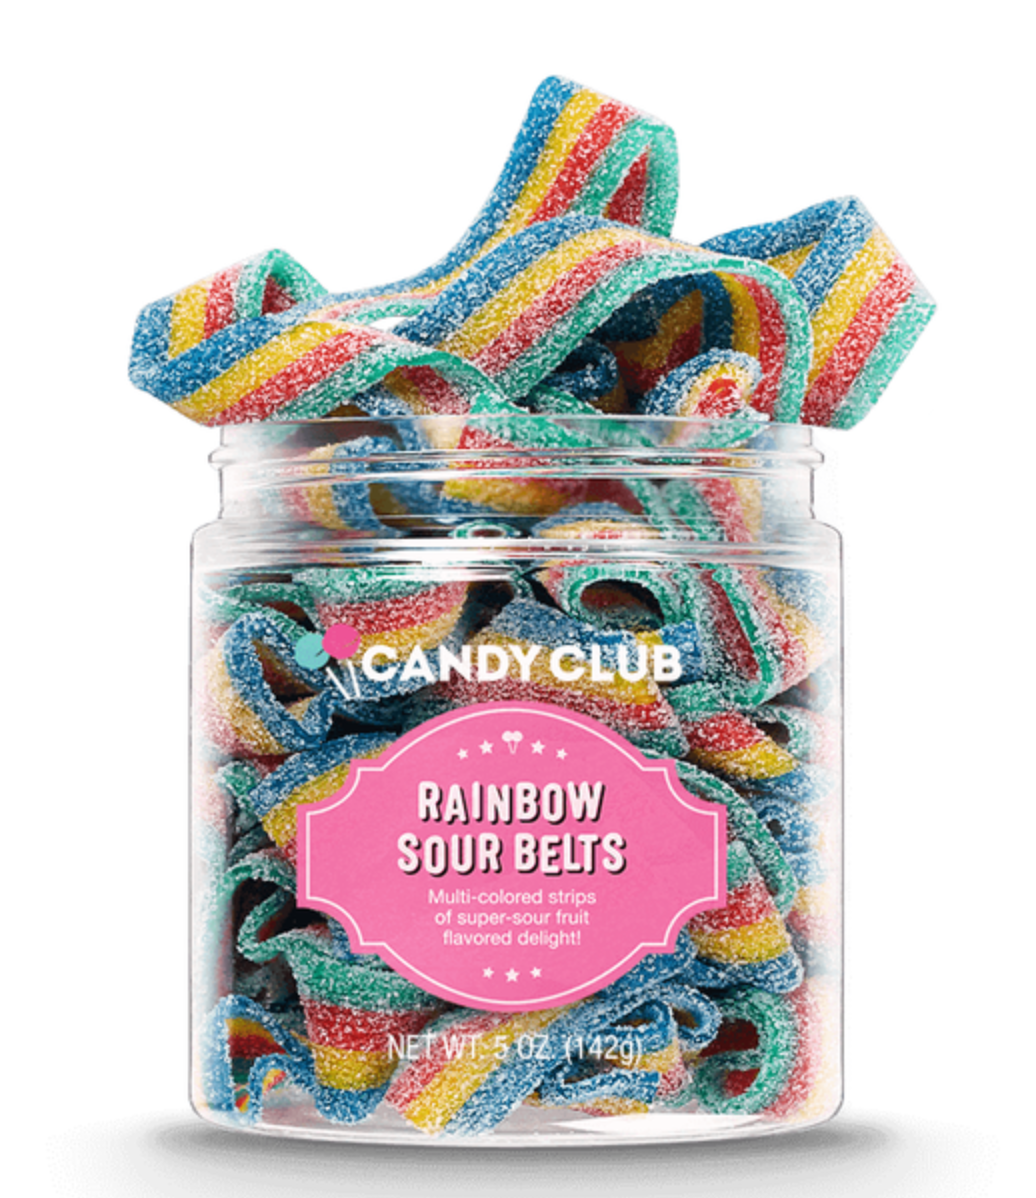 Rainbow Sour Belts (Large)